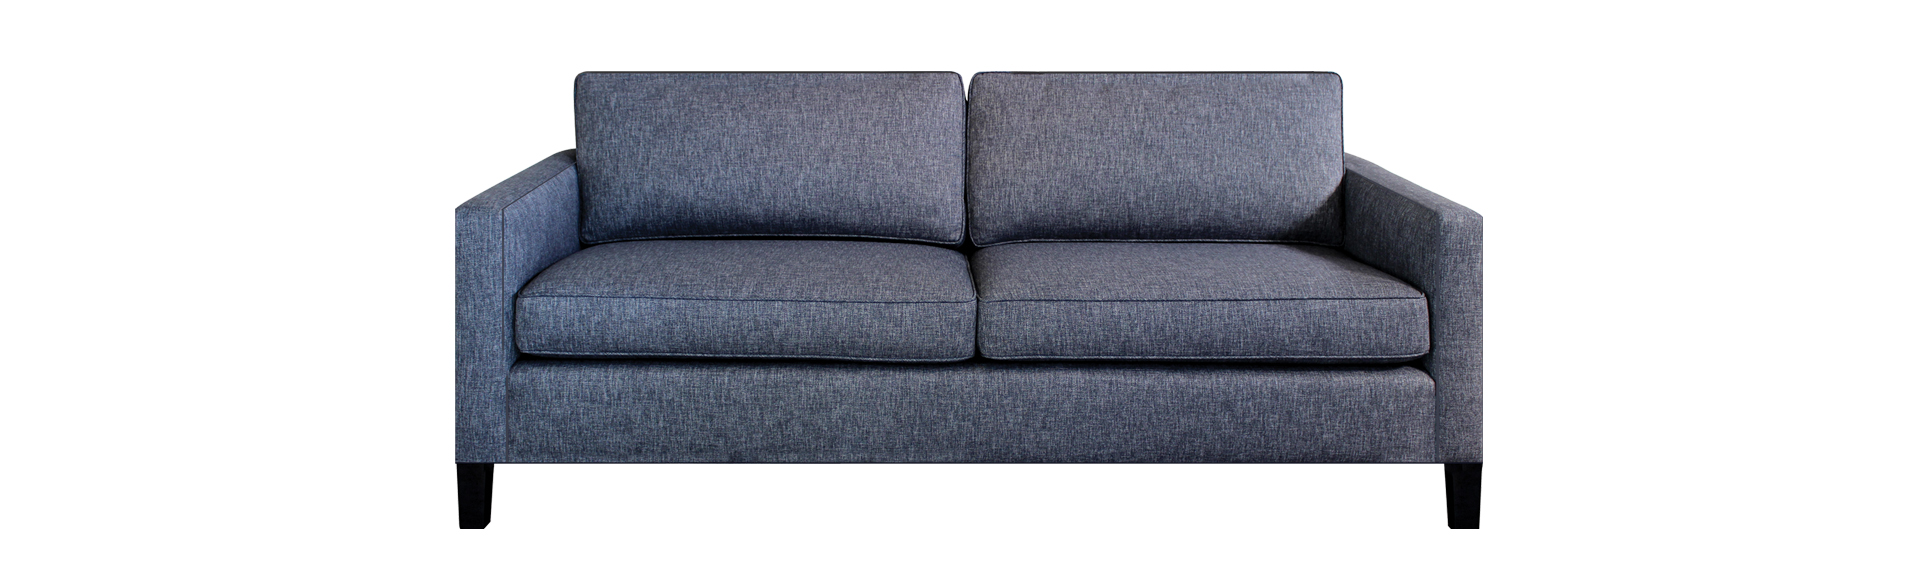 Furniture Toronto Com Best Furniture Stores In Toronto Canadian Made Sofas